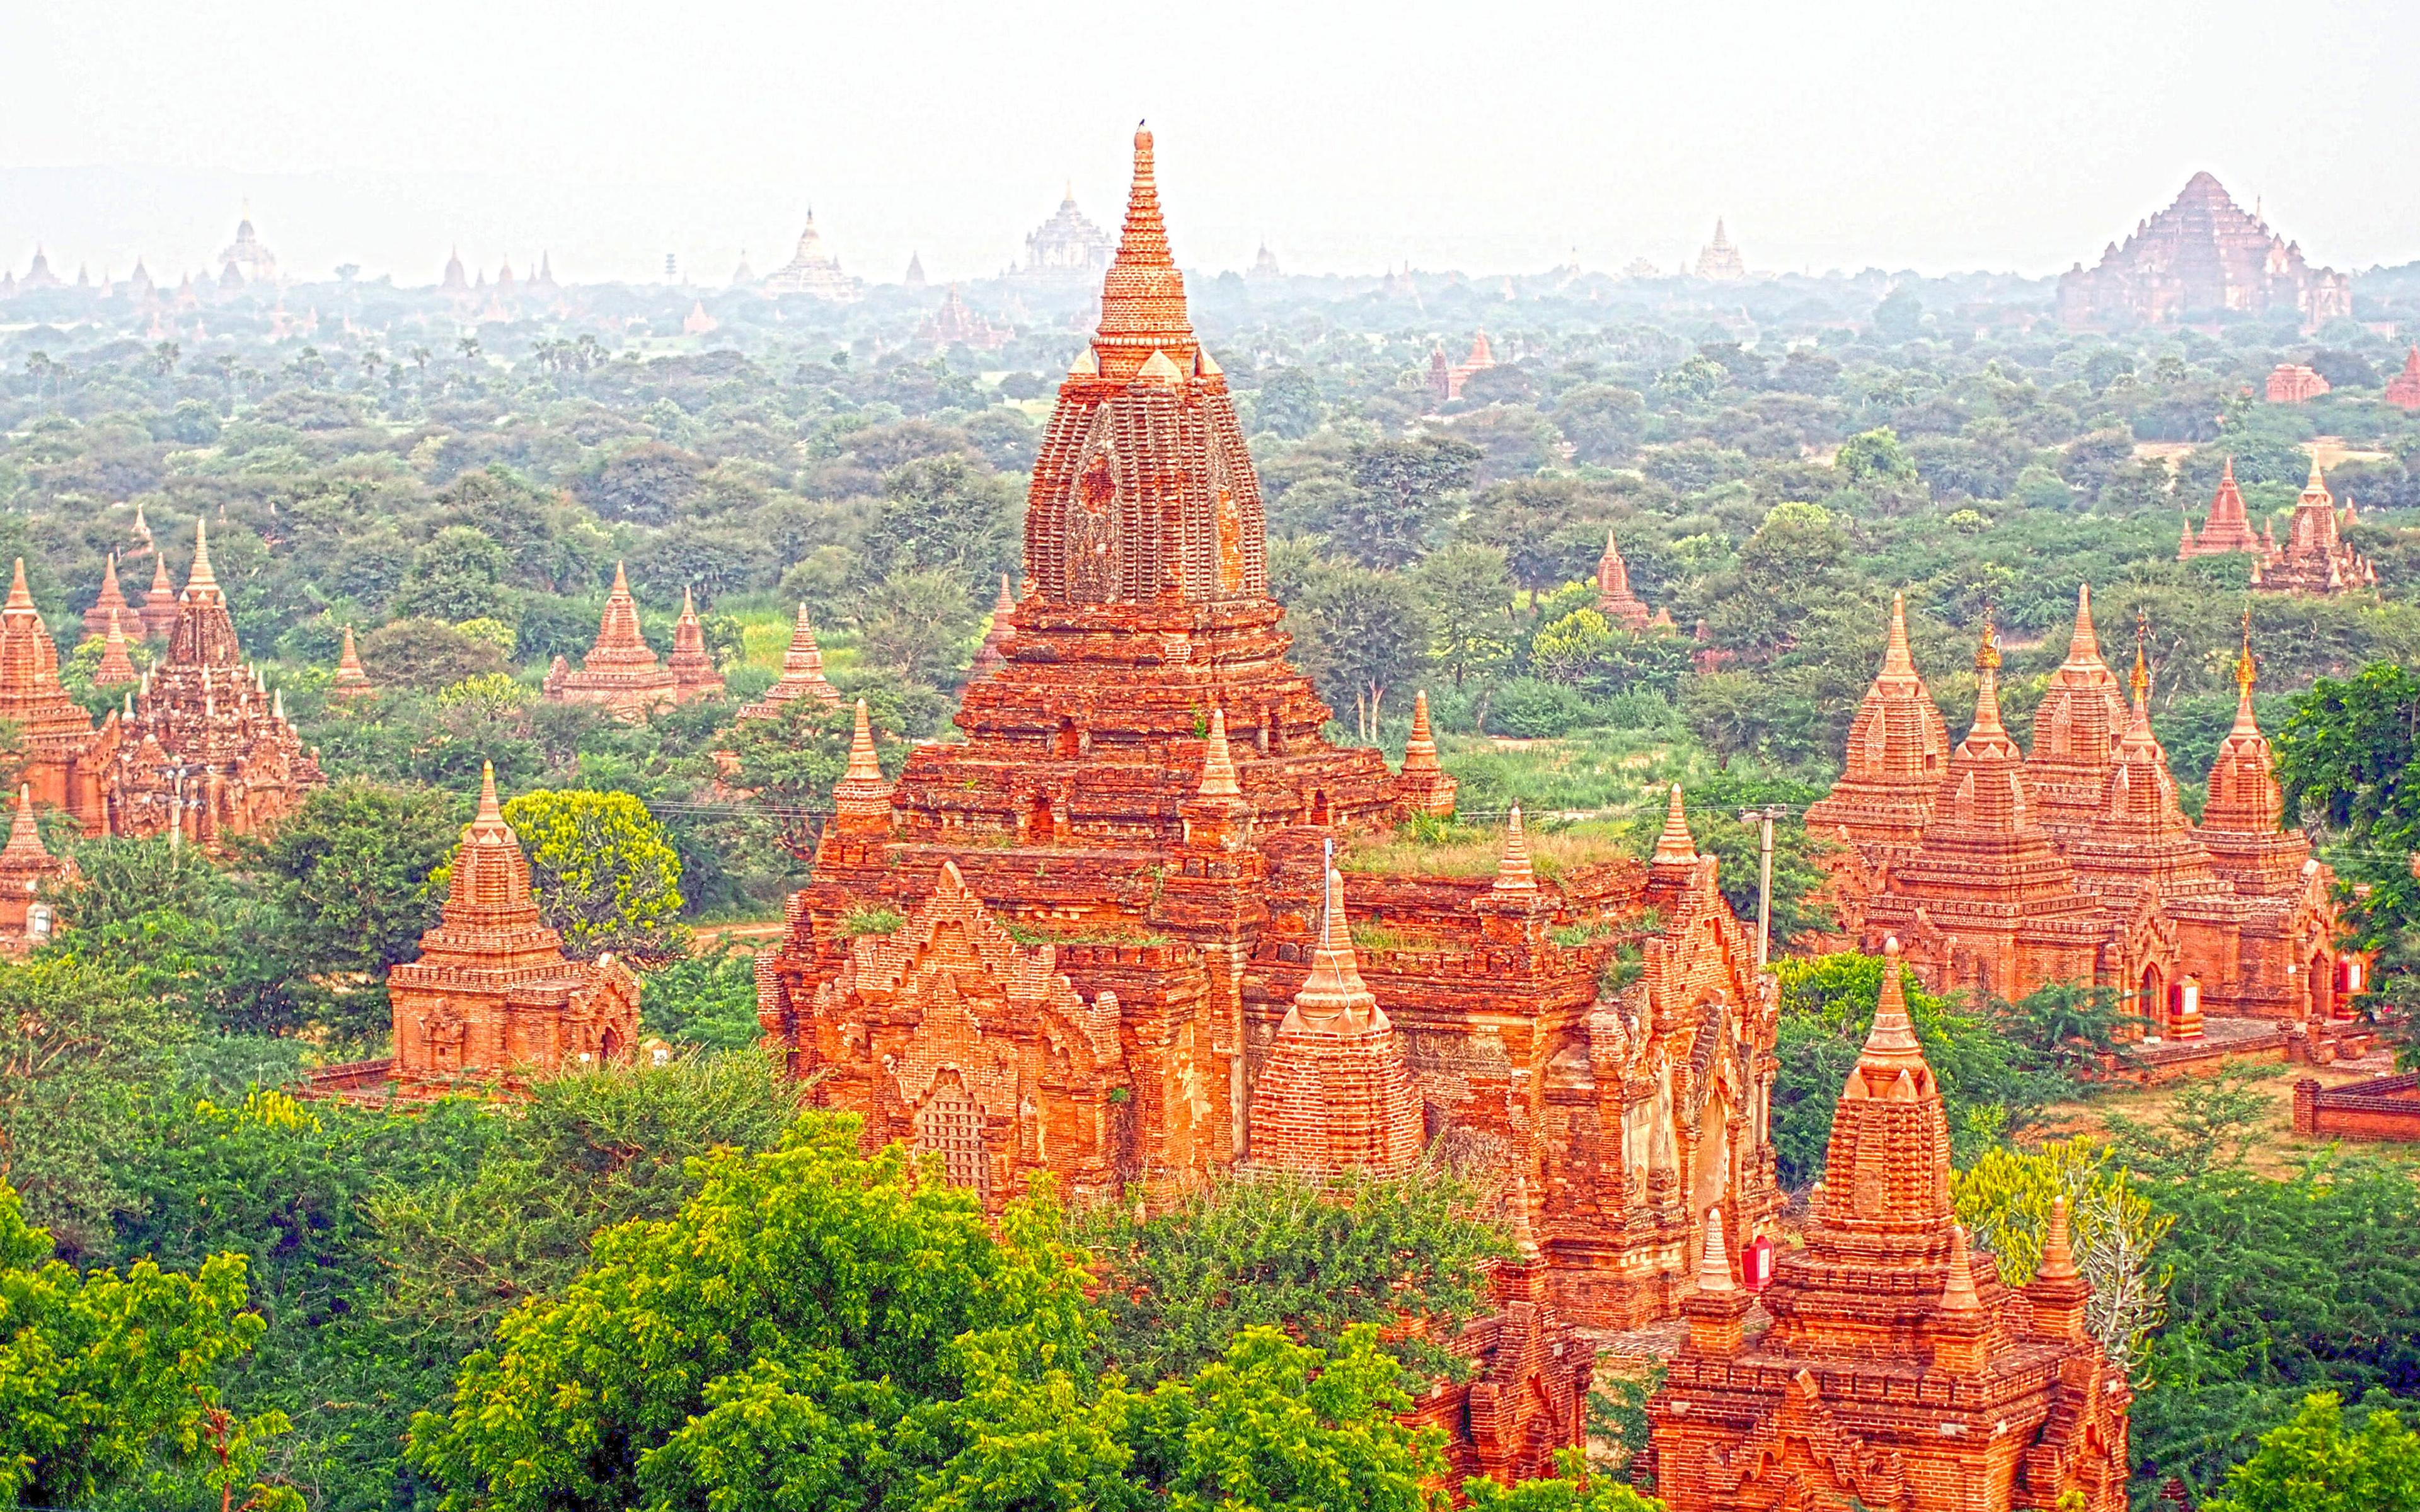 Download wallpapers Bagan, 4k, temples, ancient city, Burma, Myanmar